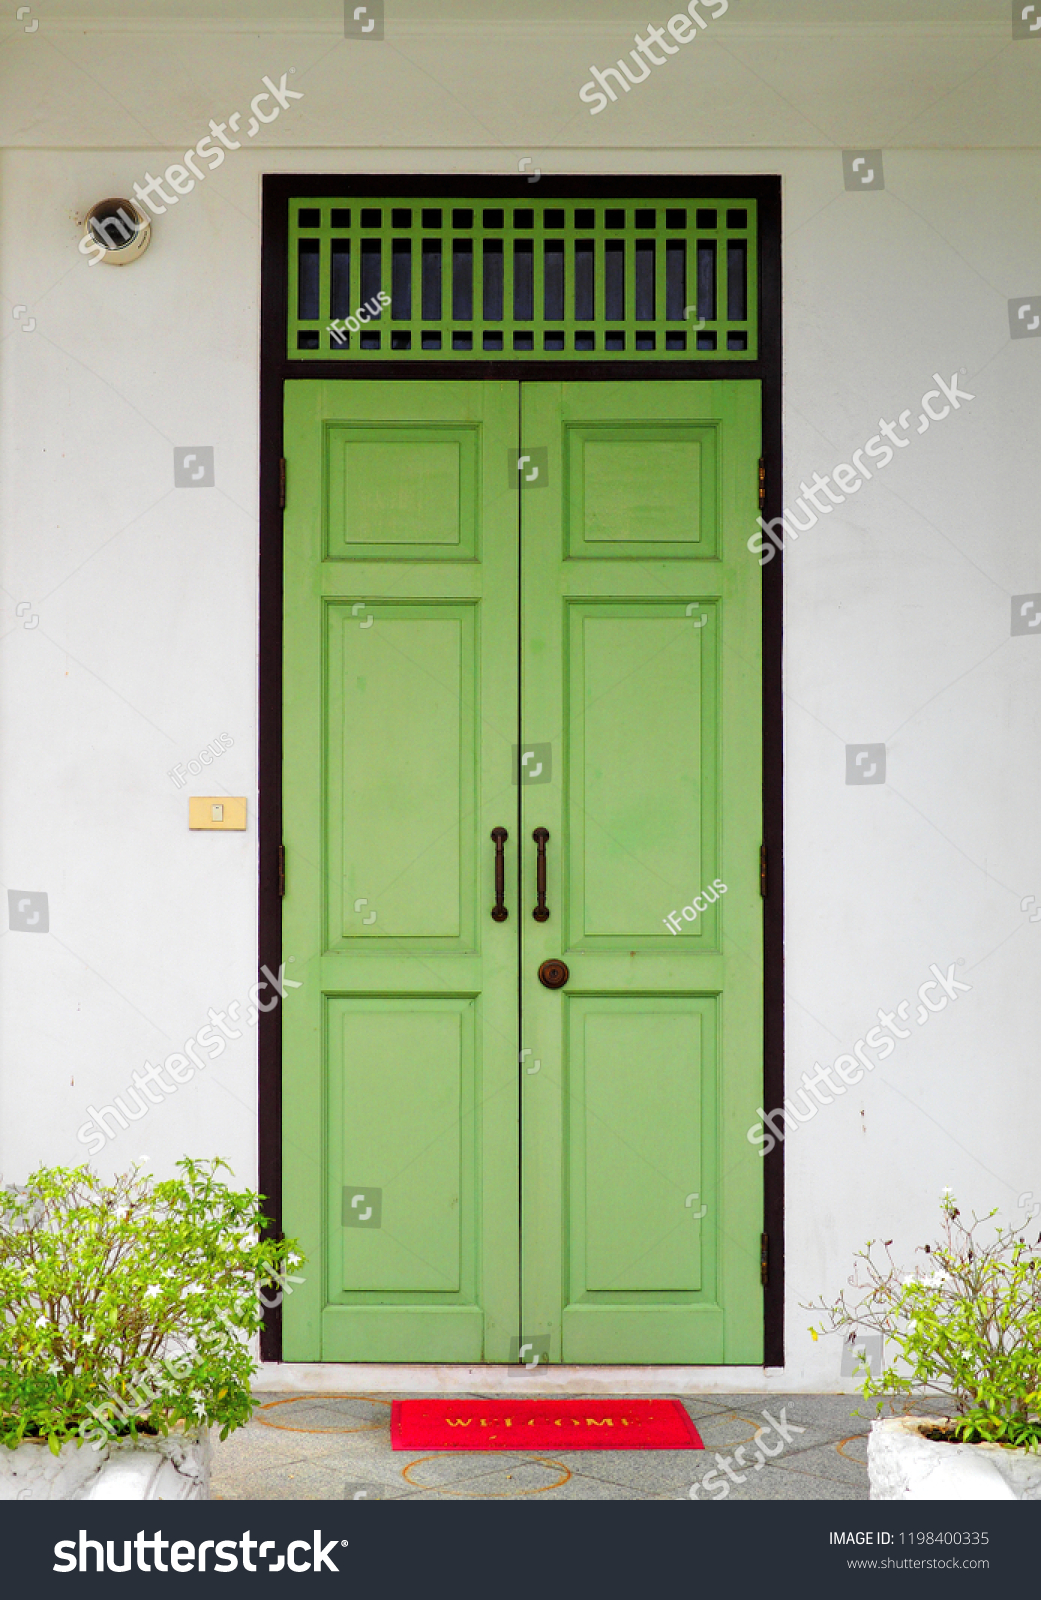 Closed green wooden doors with red welcome mat